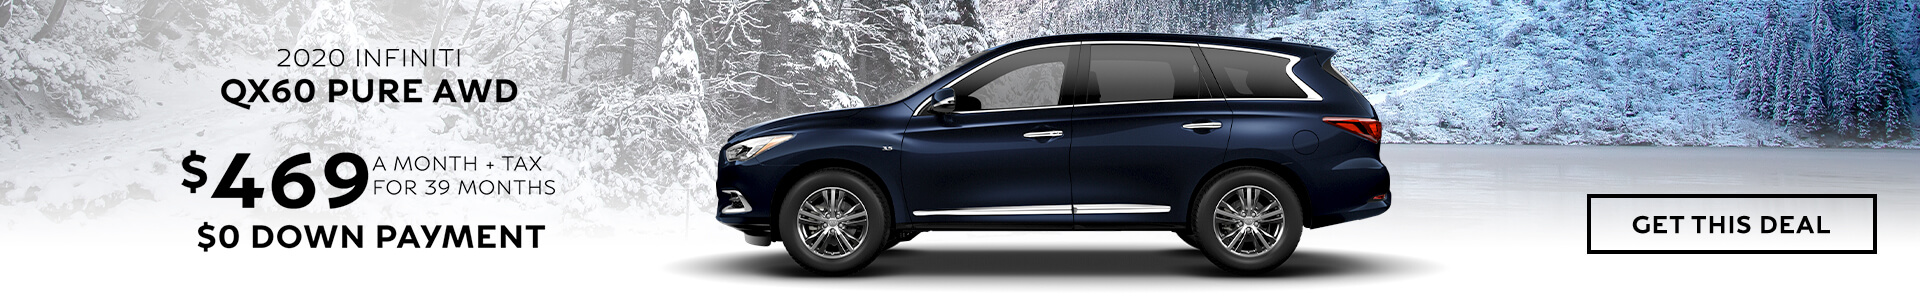 QX60 PURE - Lease for $469